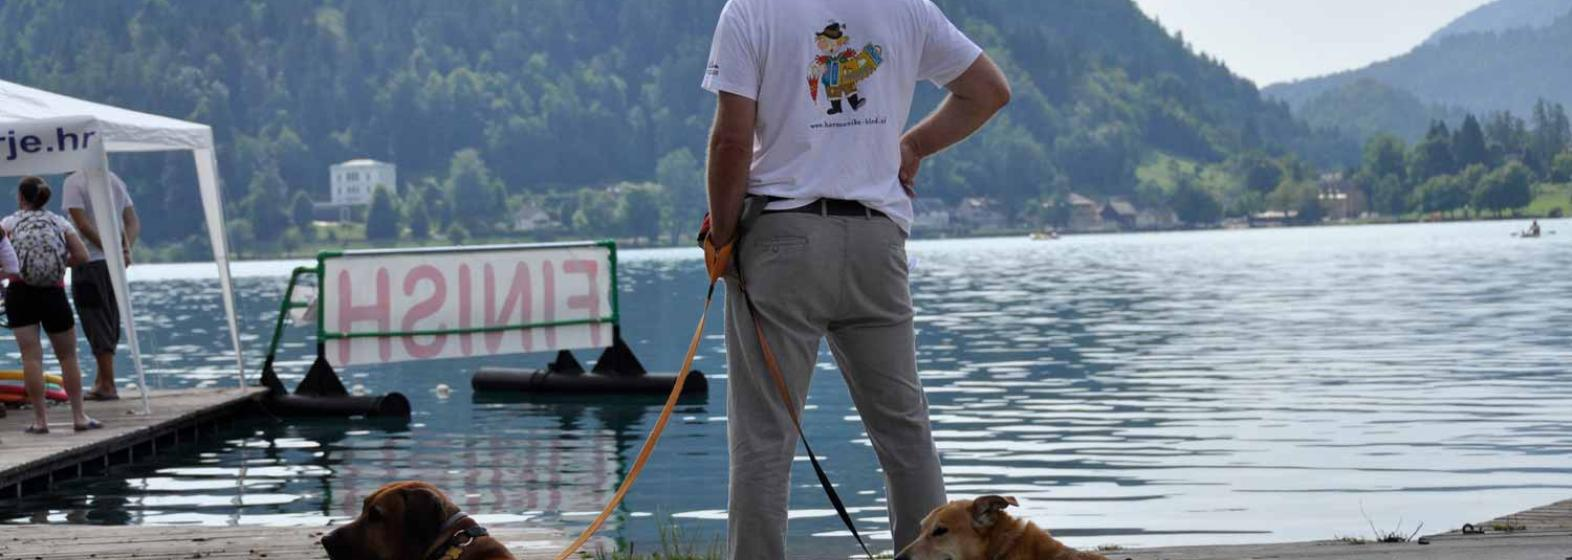 Bled Swimming Challenge 2018 03